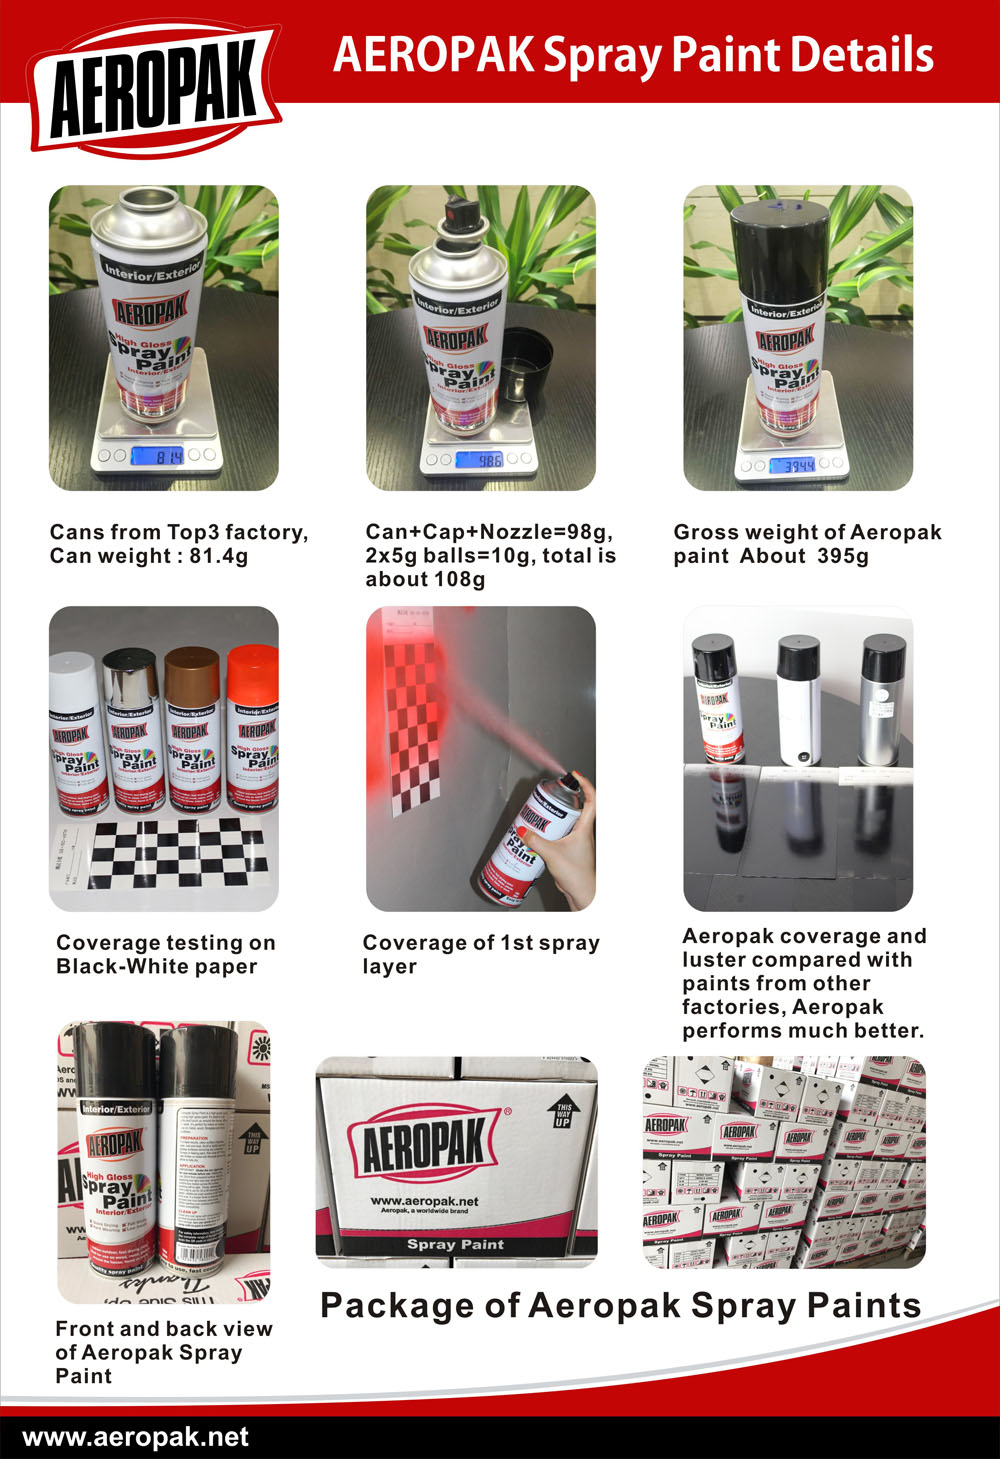 AEROPAK Spray Paints